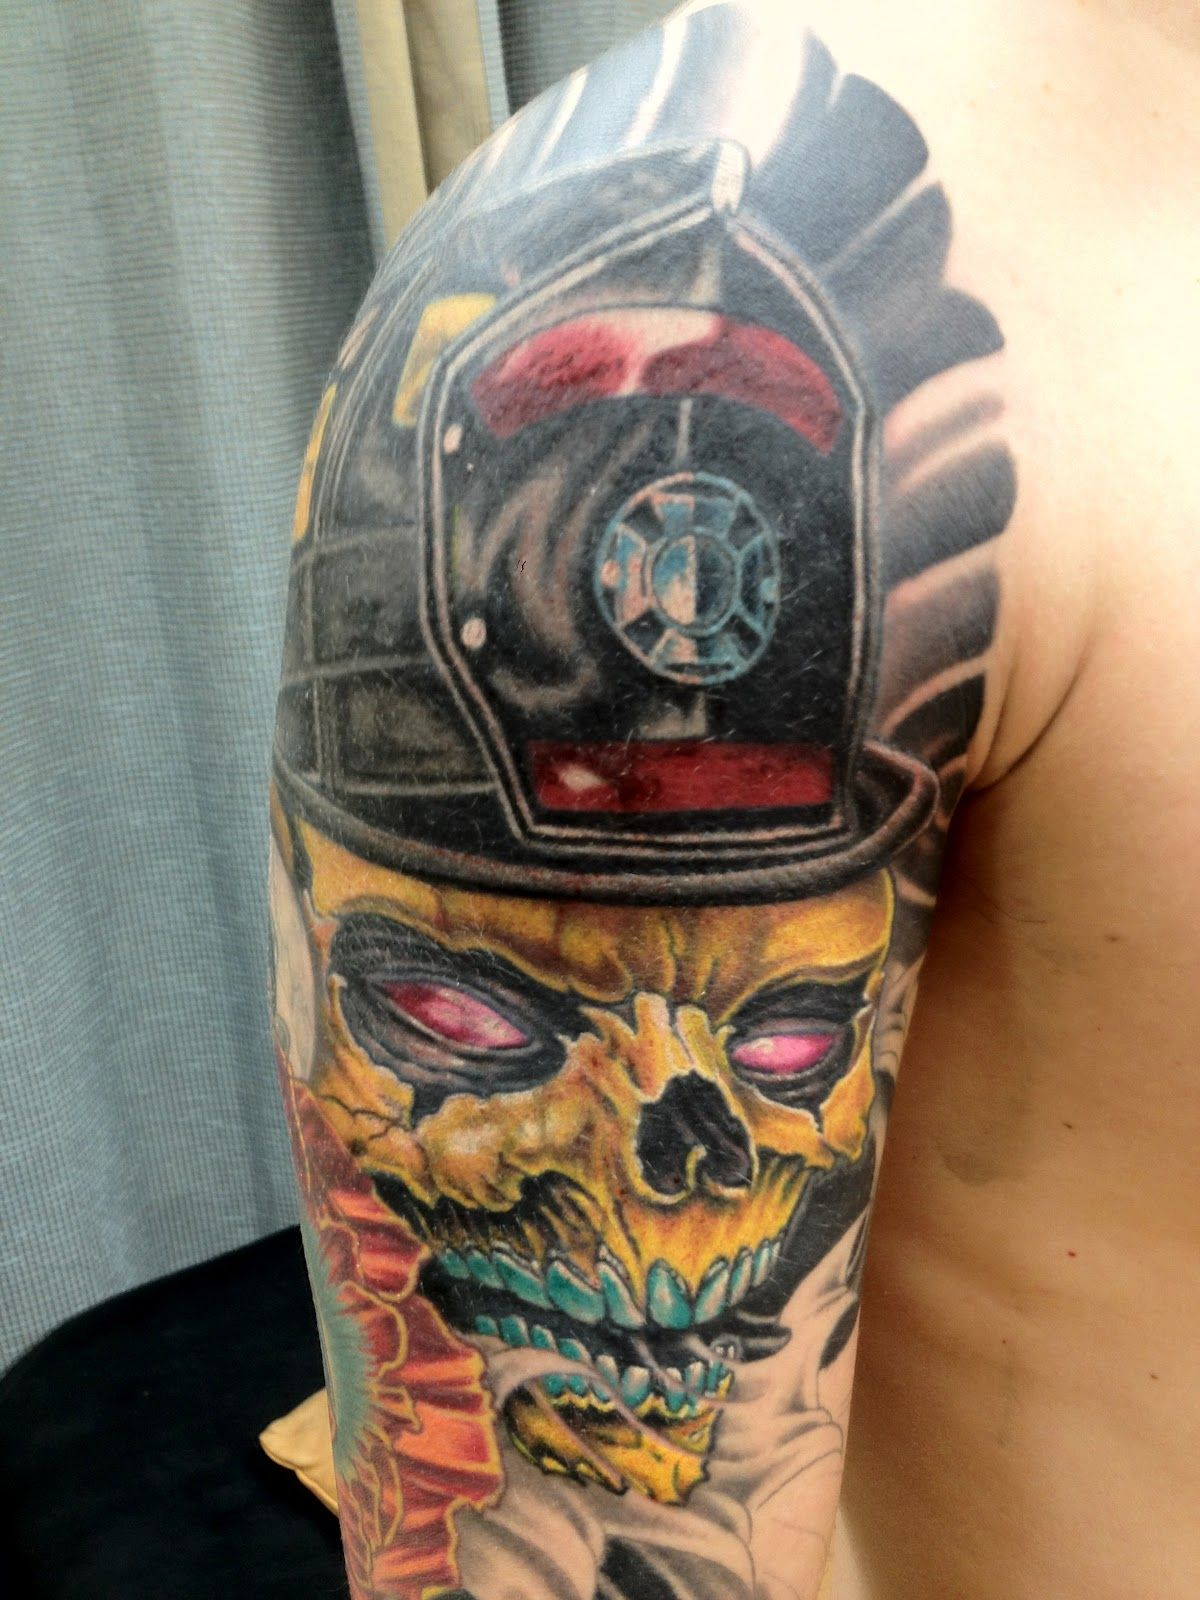 39 firefighter skull 39 tattoo shoulder and arm shared by for Lion skull tattoo